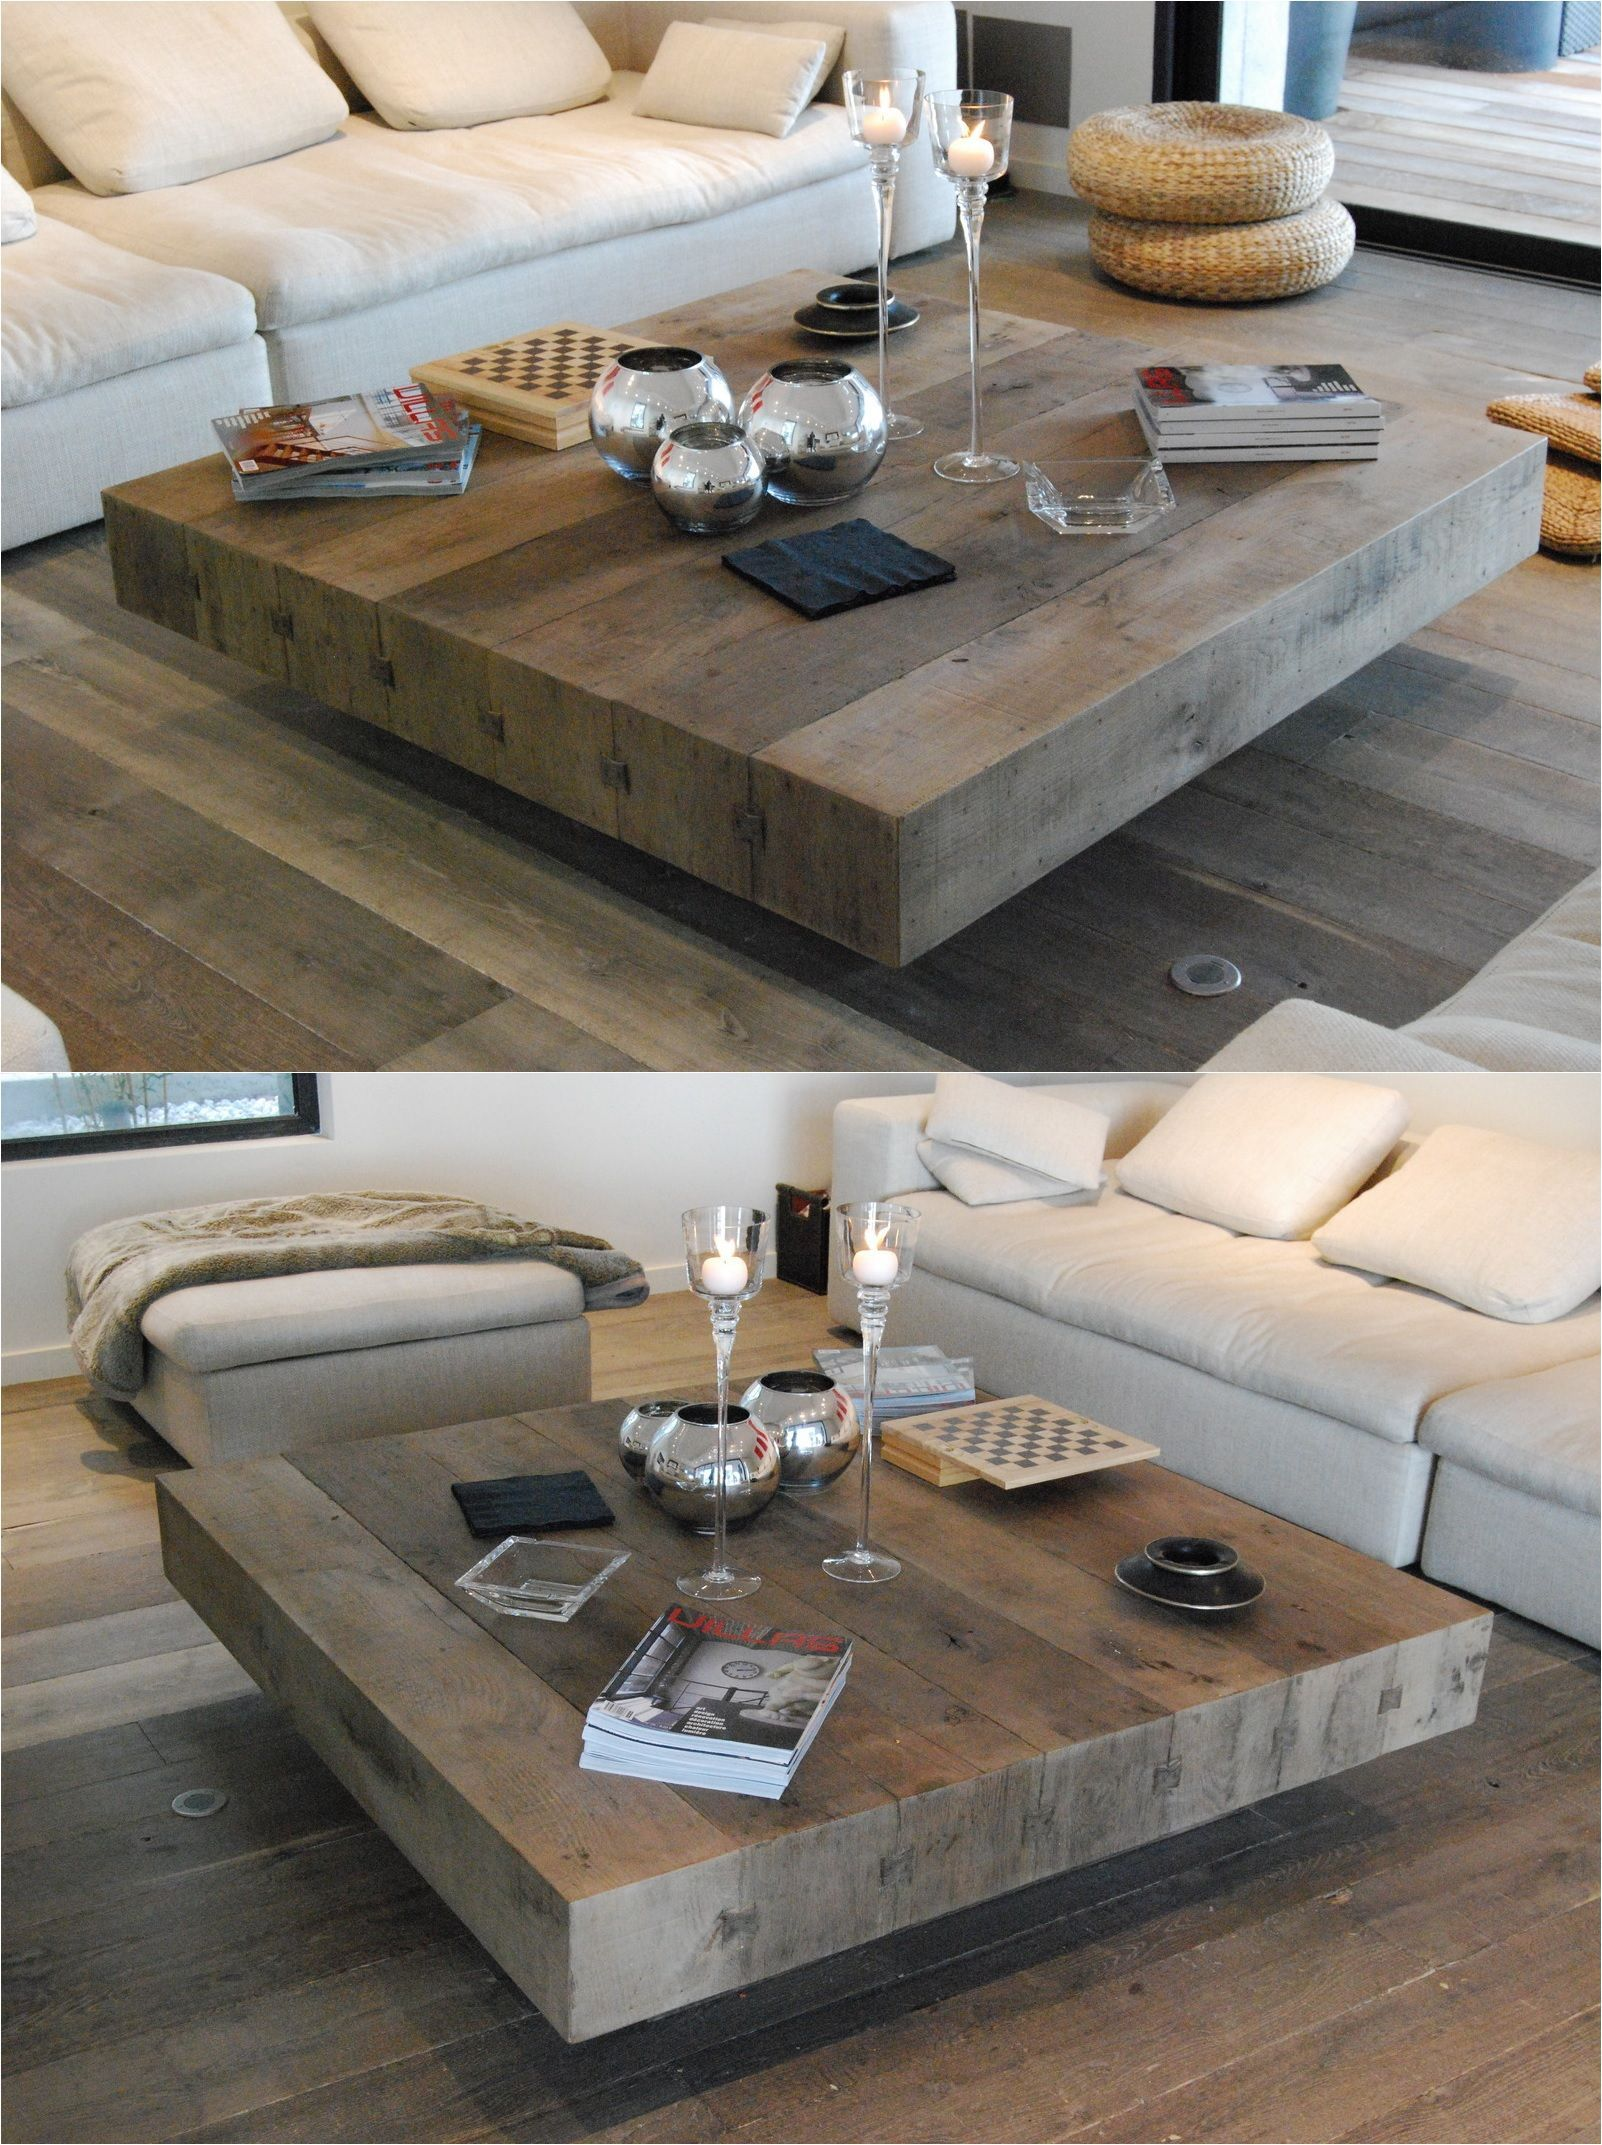 Large Square Coffee Table Tray Collection Bonheur Wooden Handmade Square Coffee Table Square Wooden Coffee Table Large Square Coffee Table Rustic Coffee Tables [ 2145 x 1602 Pixel ]